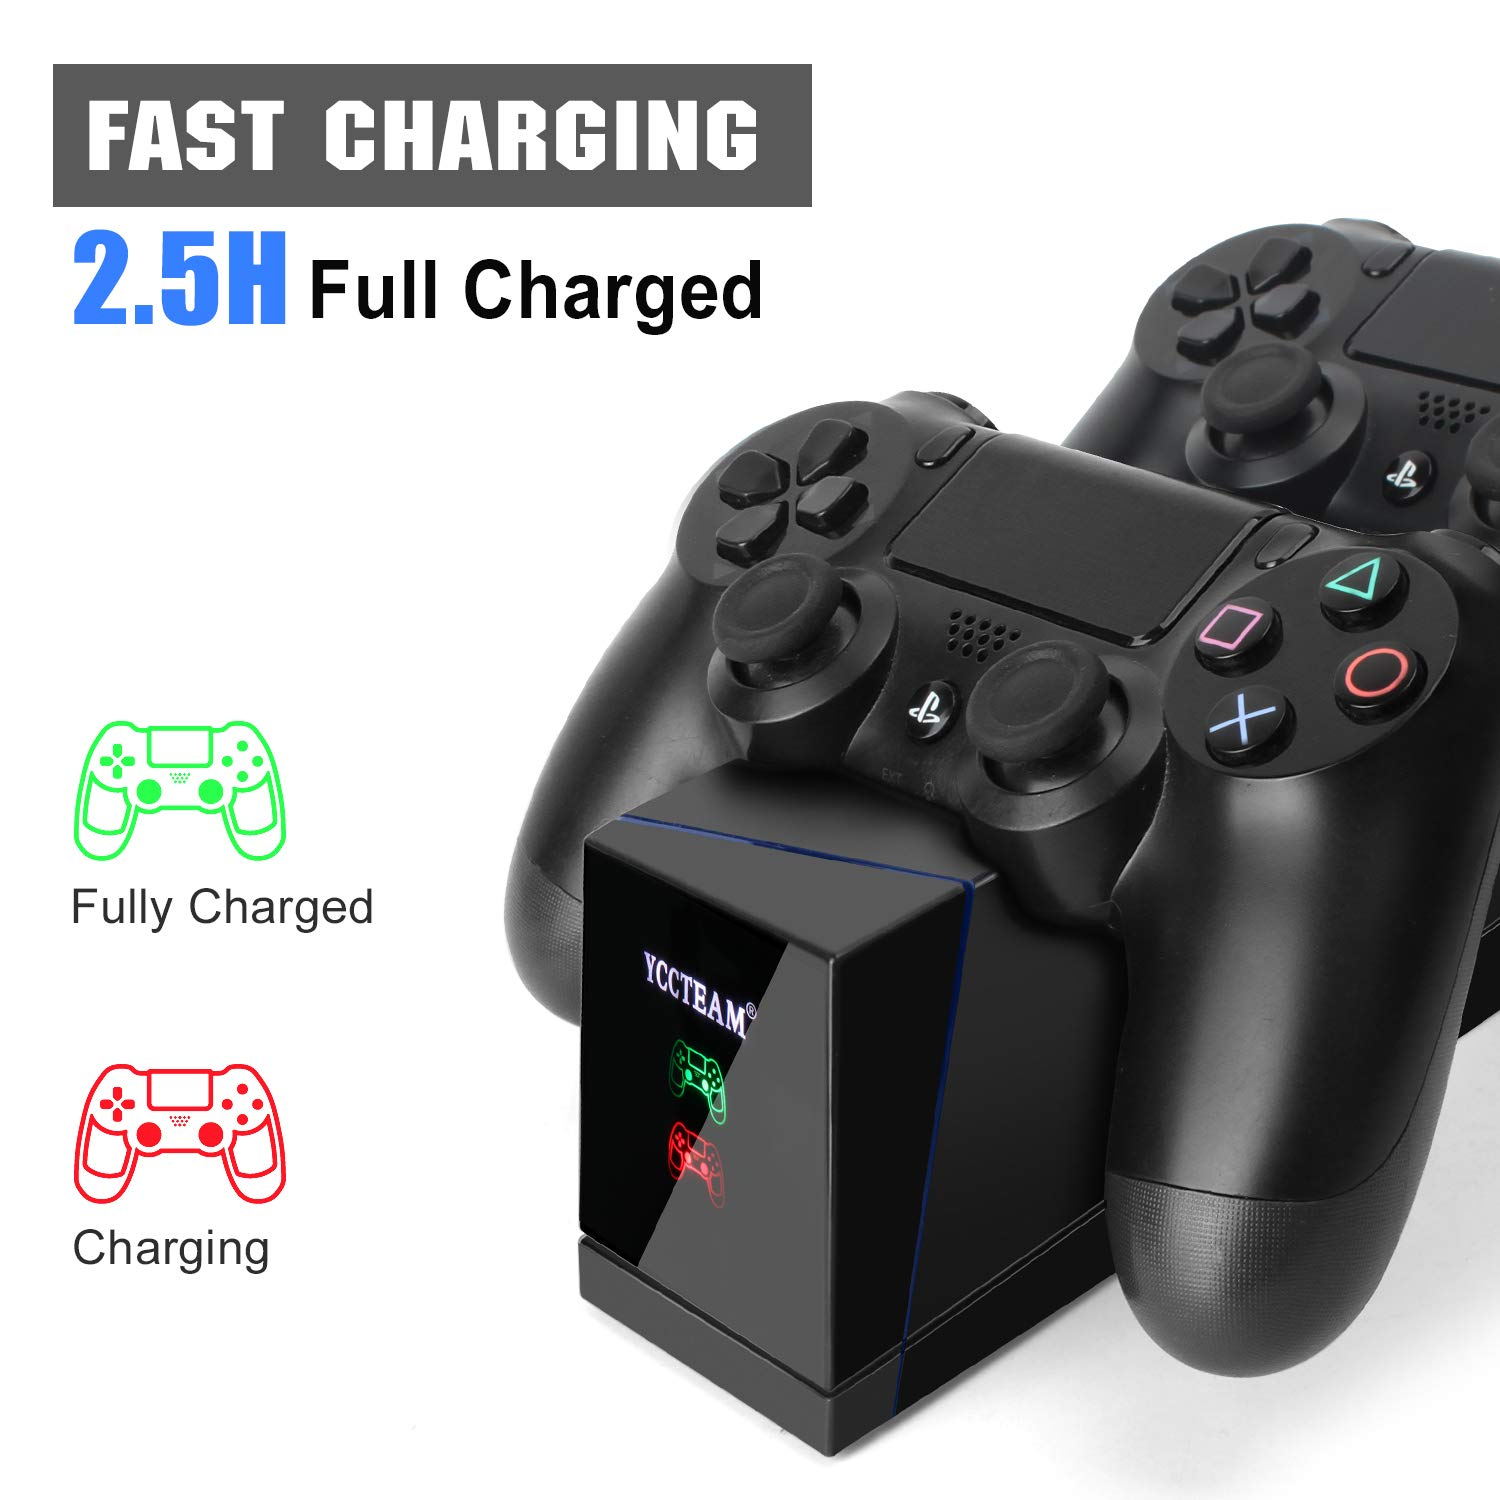 PS4 Controller Charger, Dual PS4 Modded Controller Charging Station for Sony Playstation 4 / PS4 / PS4 Slim / PS4 Pro Charging Dock Stand Station with IC-Chip Protection